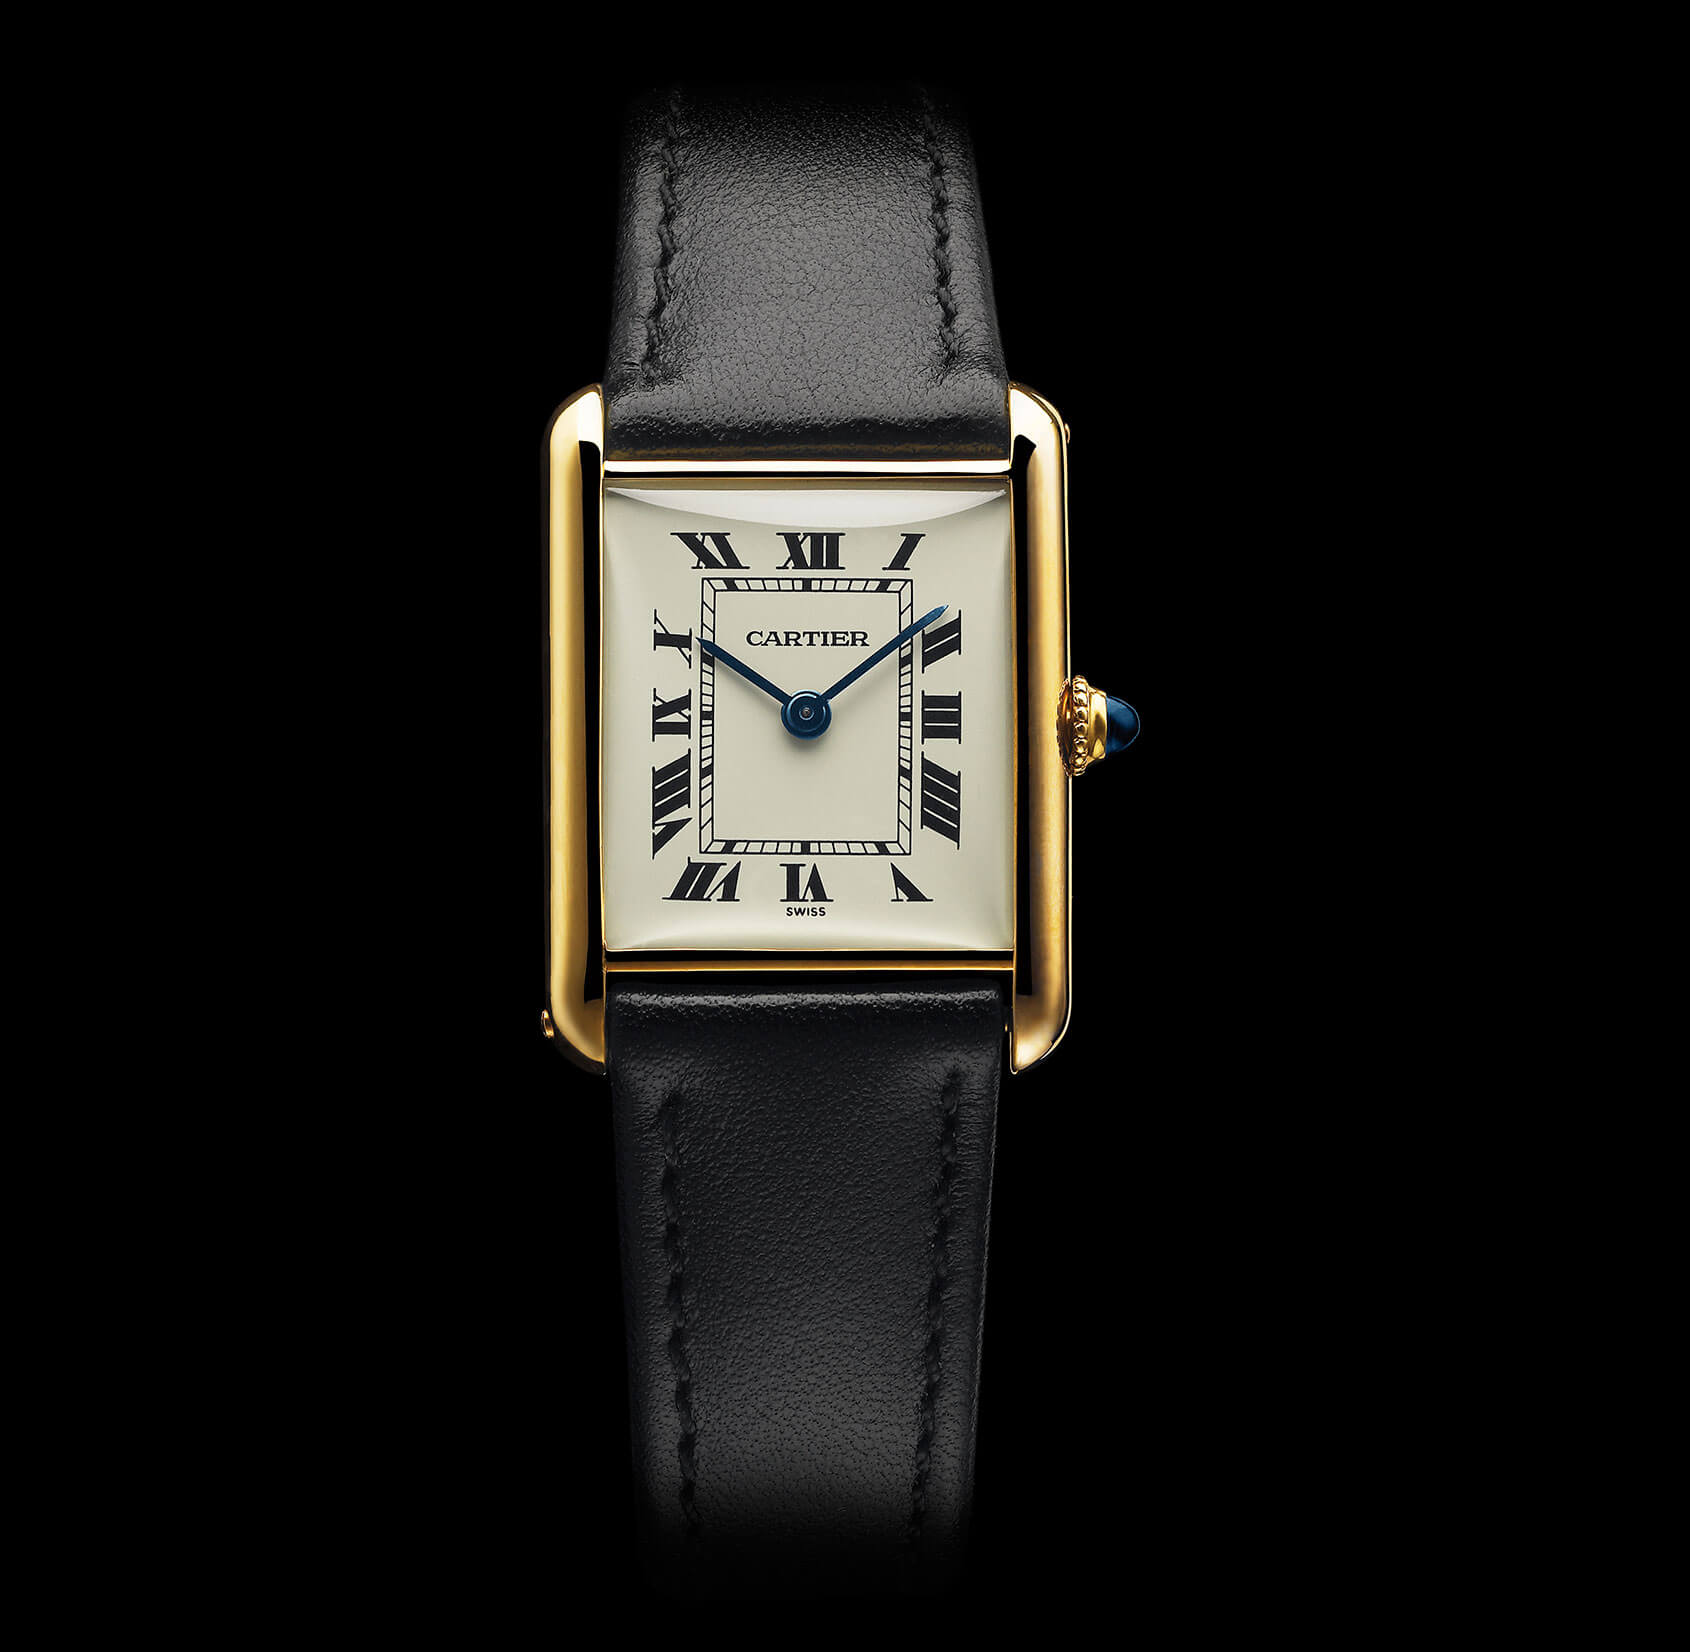 1920s watch wristwatch vintage